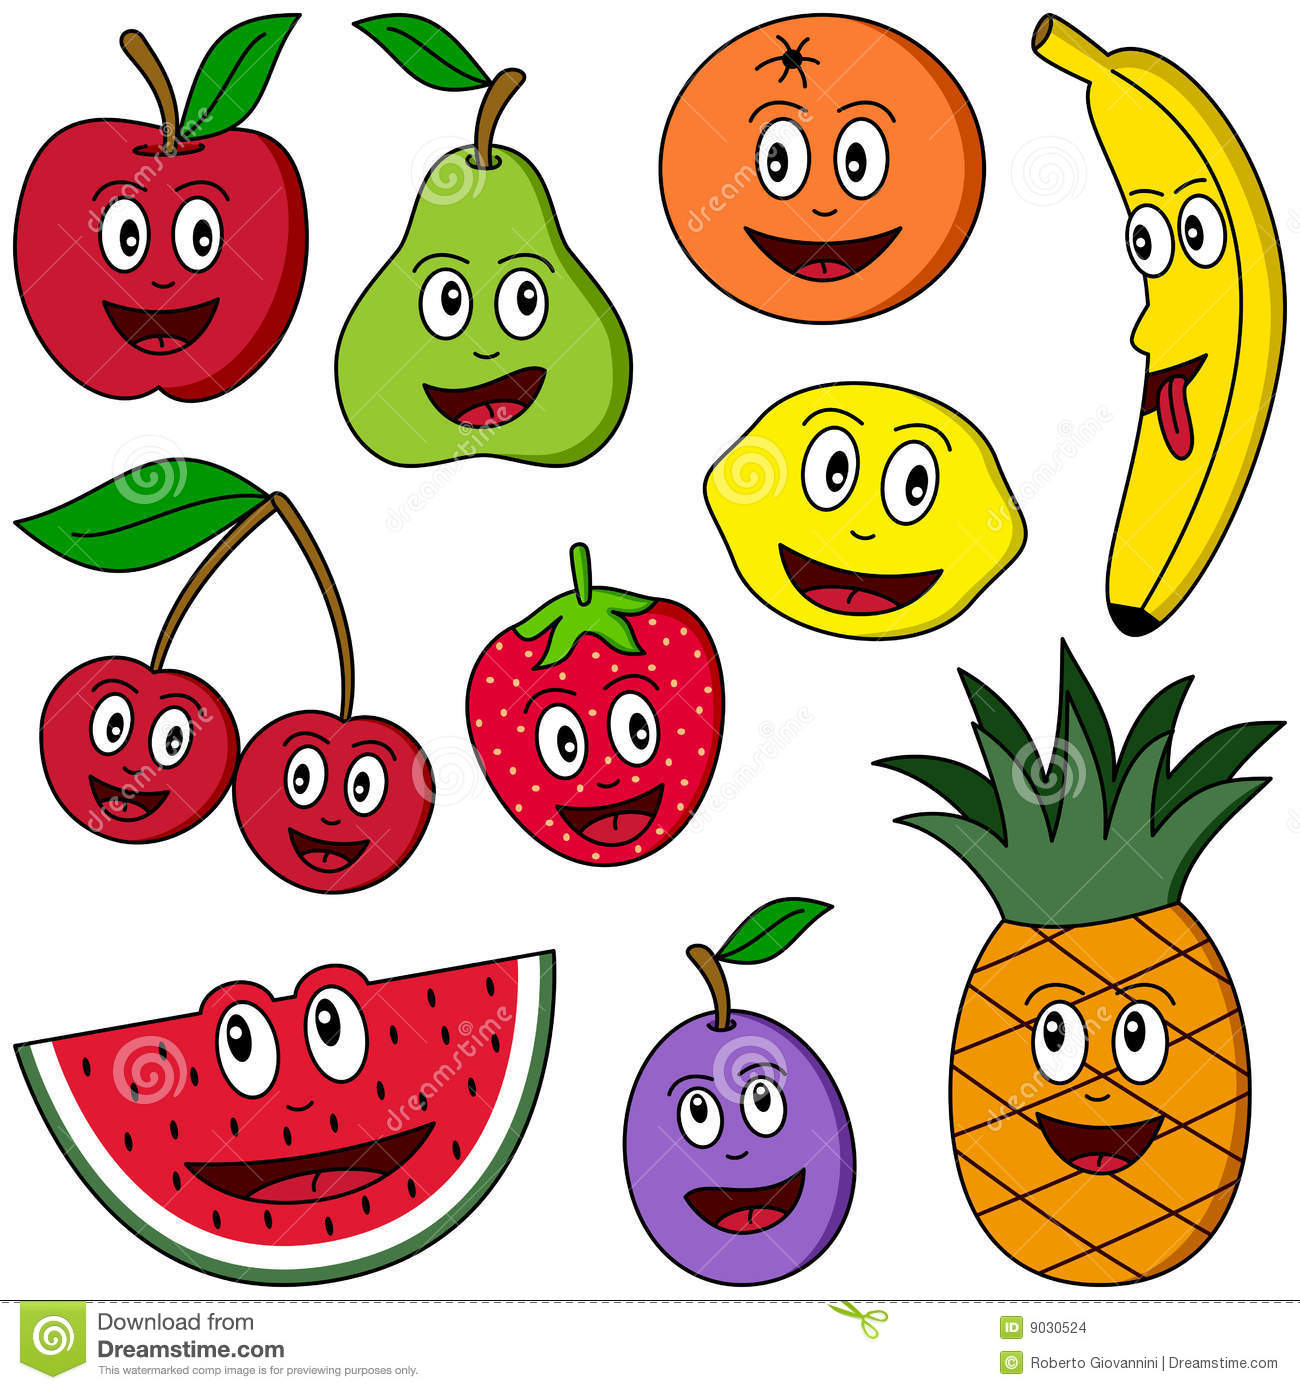 Fruit Dessin fruit de ramassage de dessin animé illustration de vecteur